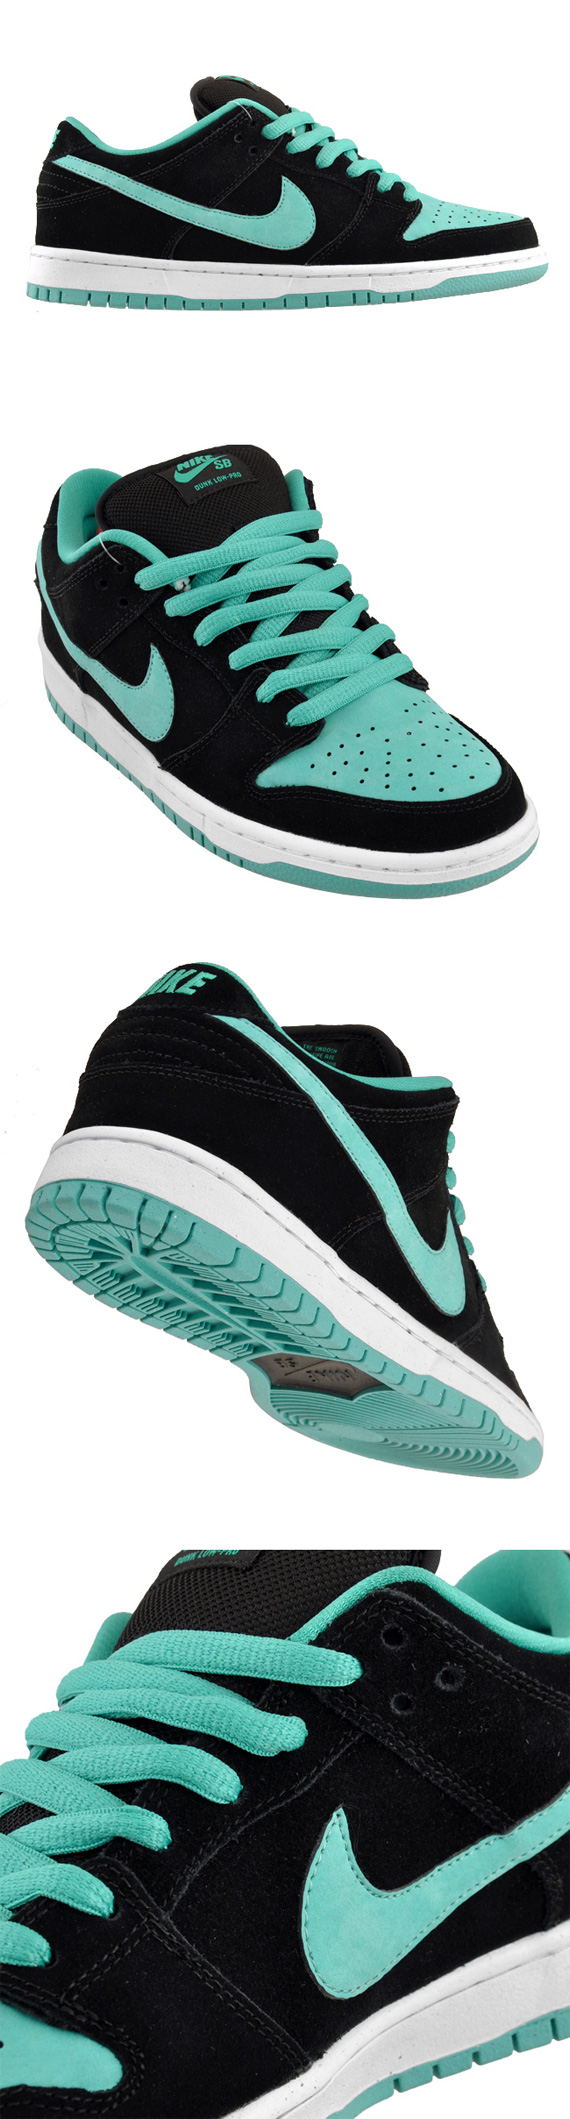 Nike SB Dunk Low Pro Black Clear Jade-White 304292-030. TAGS  Nike SB 2ad60e6251